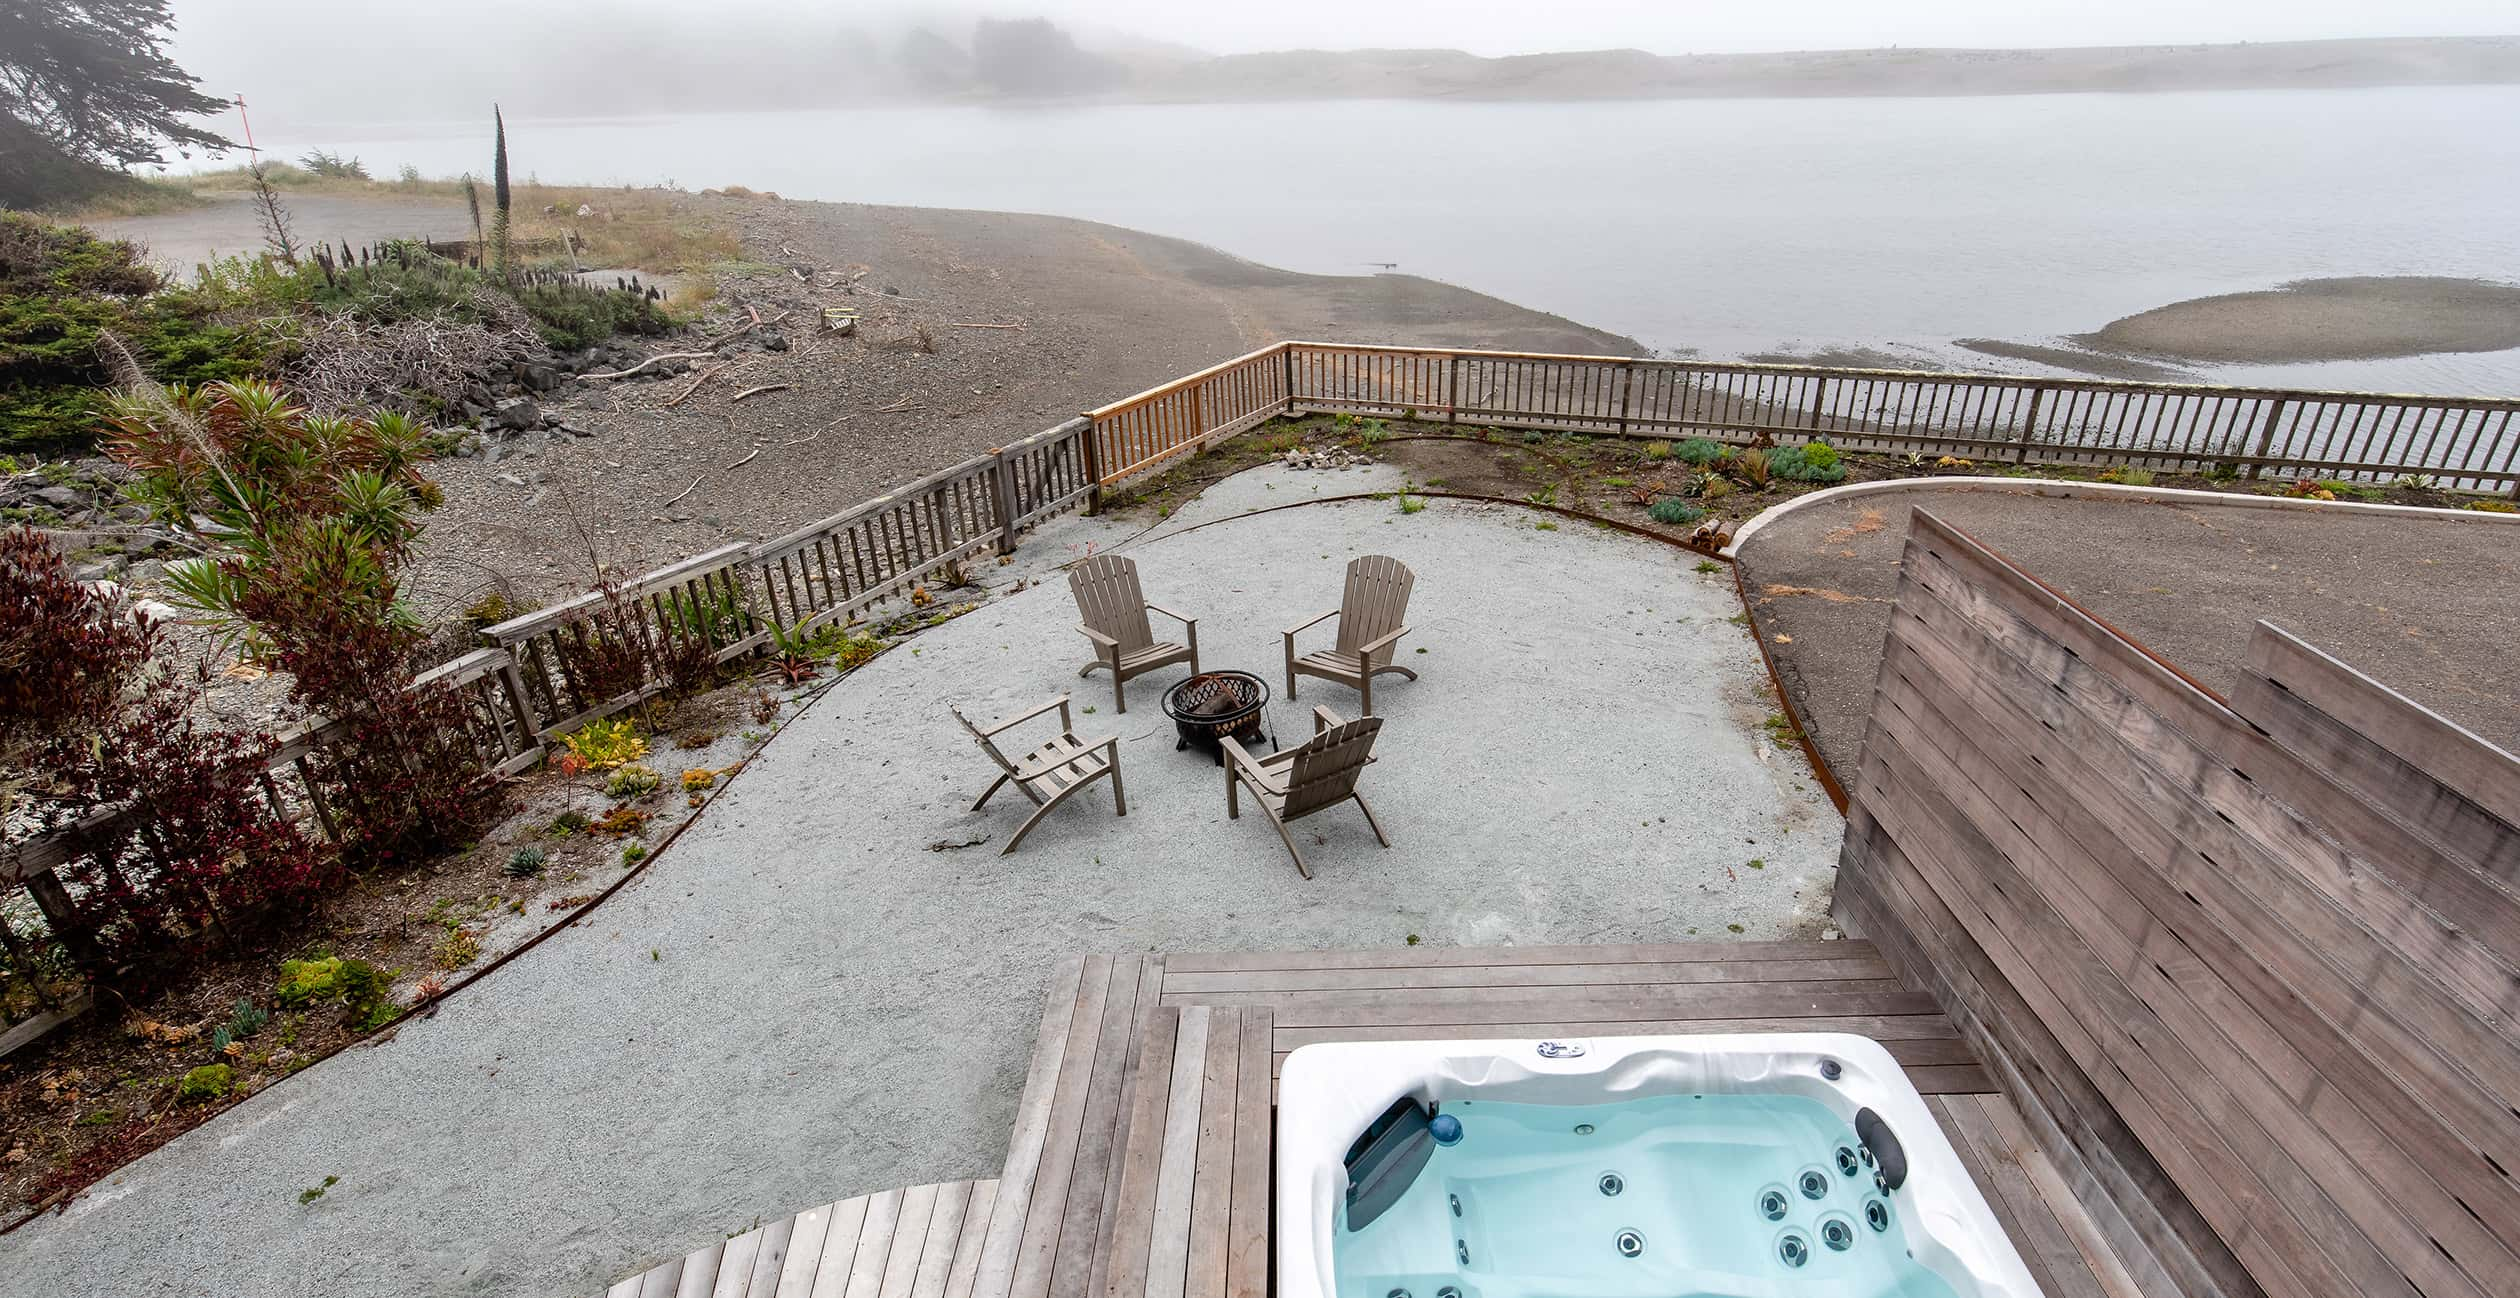 Sunset House fire pit and hot tub overview